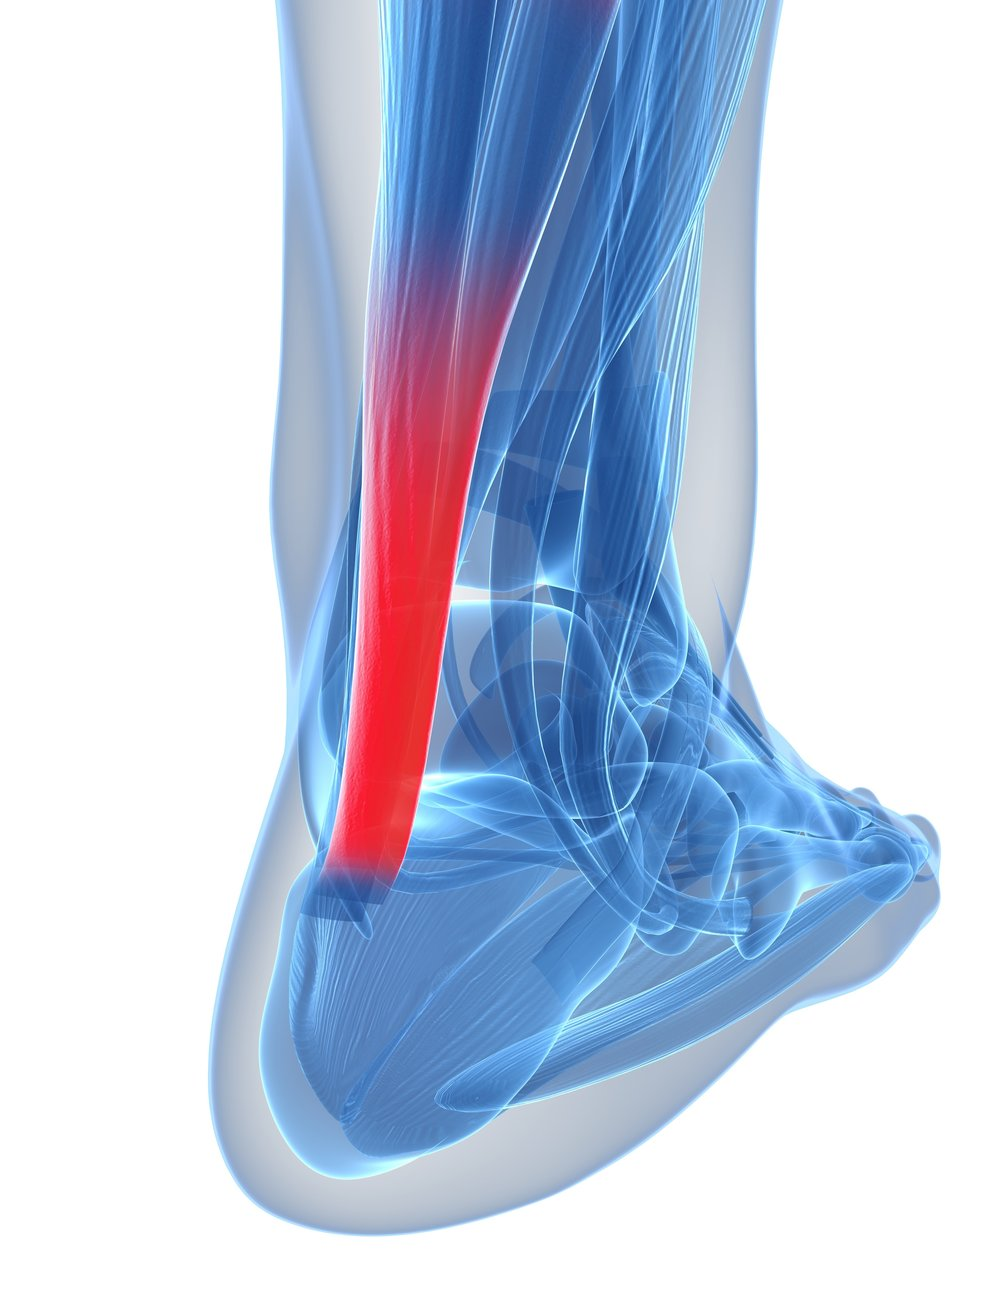 picture of achilles tendonitis.jpg